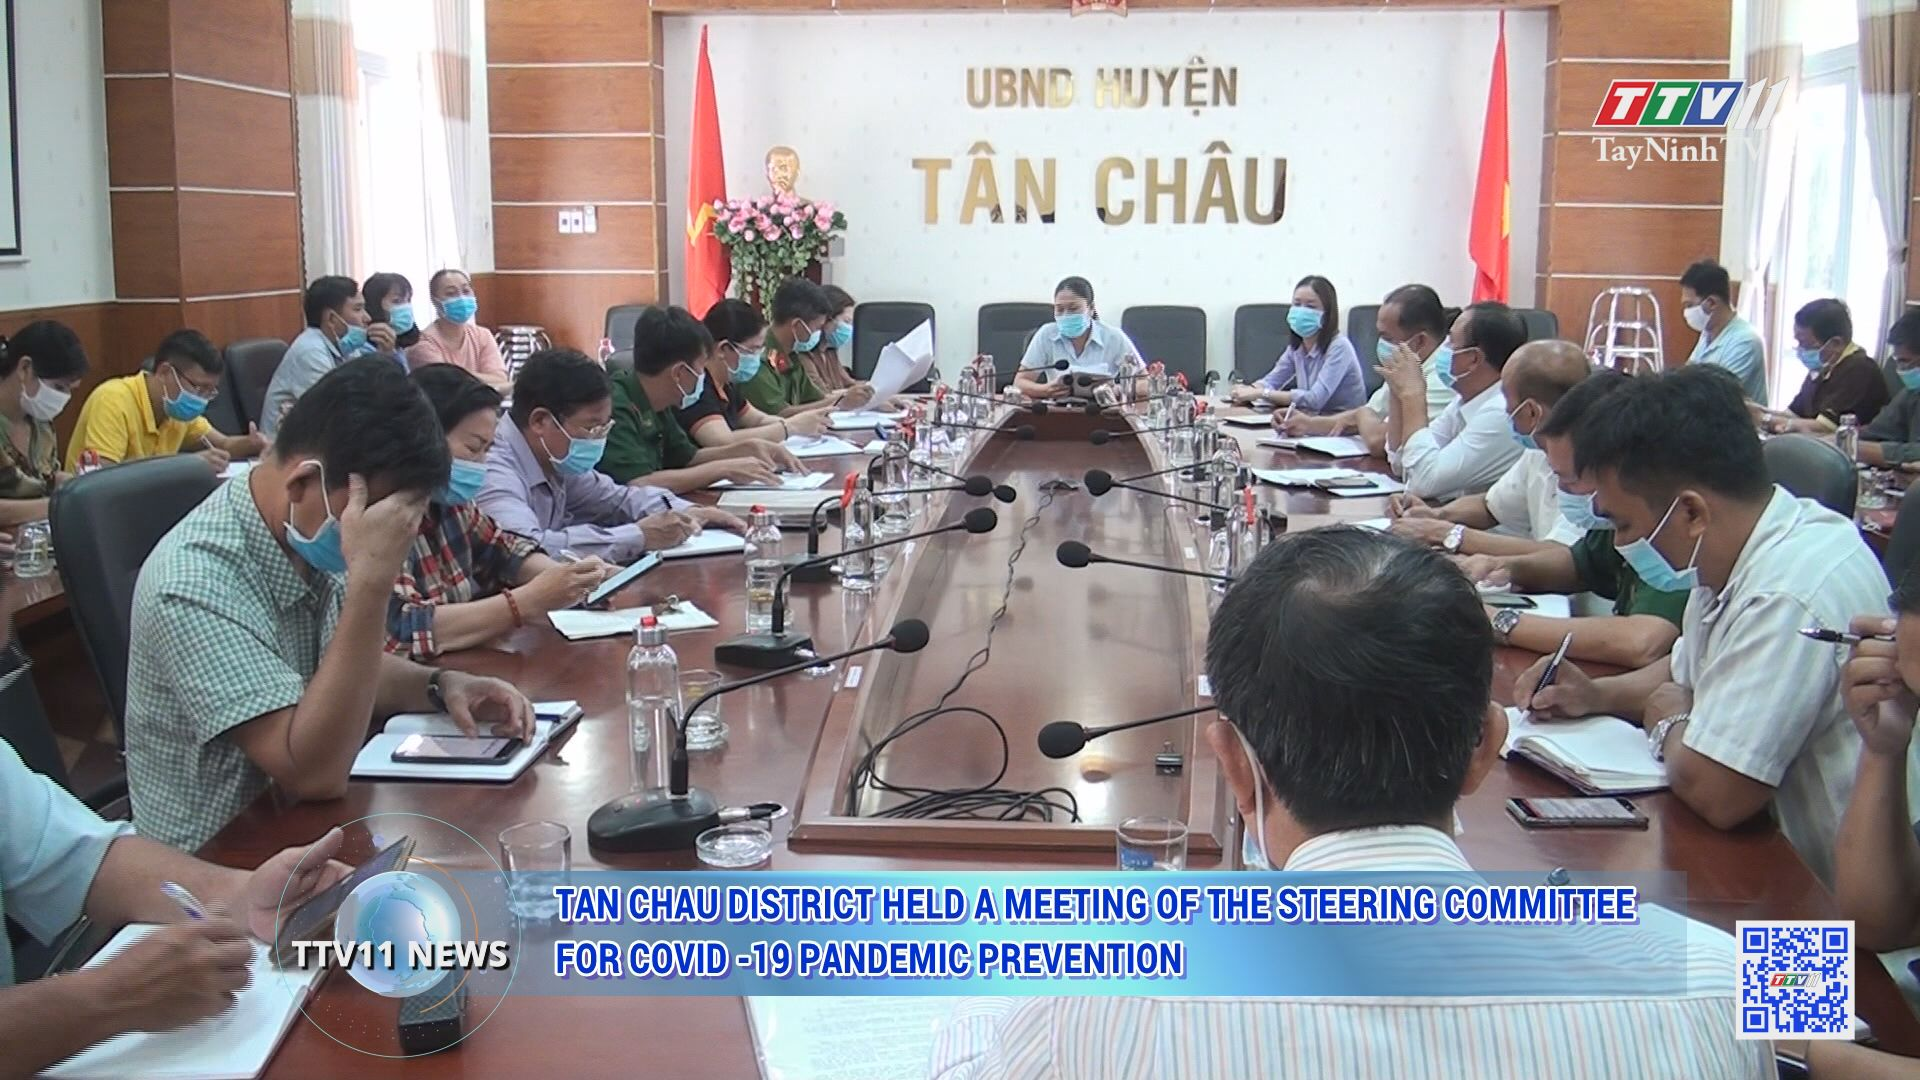 Tan Chau district held a meeting of the Steering Committee for Covid -19 pandemic prevention | TTVNEWS | TayNinhTV Today